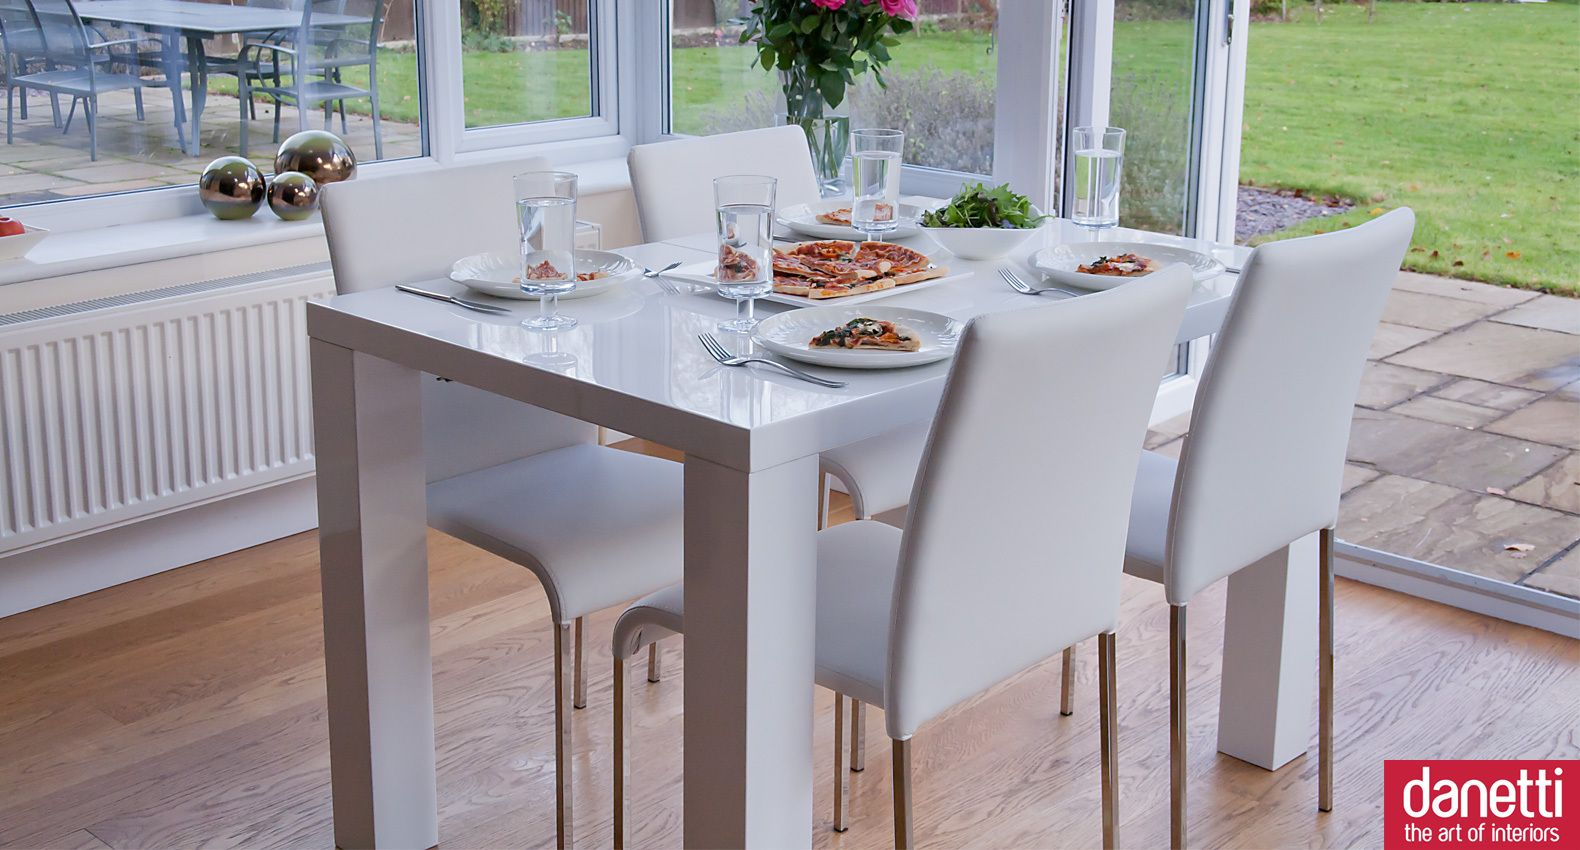 The Fern White Gloss Dining Table Has A High Gloss Pure White Surface Which Reflects Light Au 4 Seater Dining Table Modern Dining Room Modern Dining Room Set